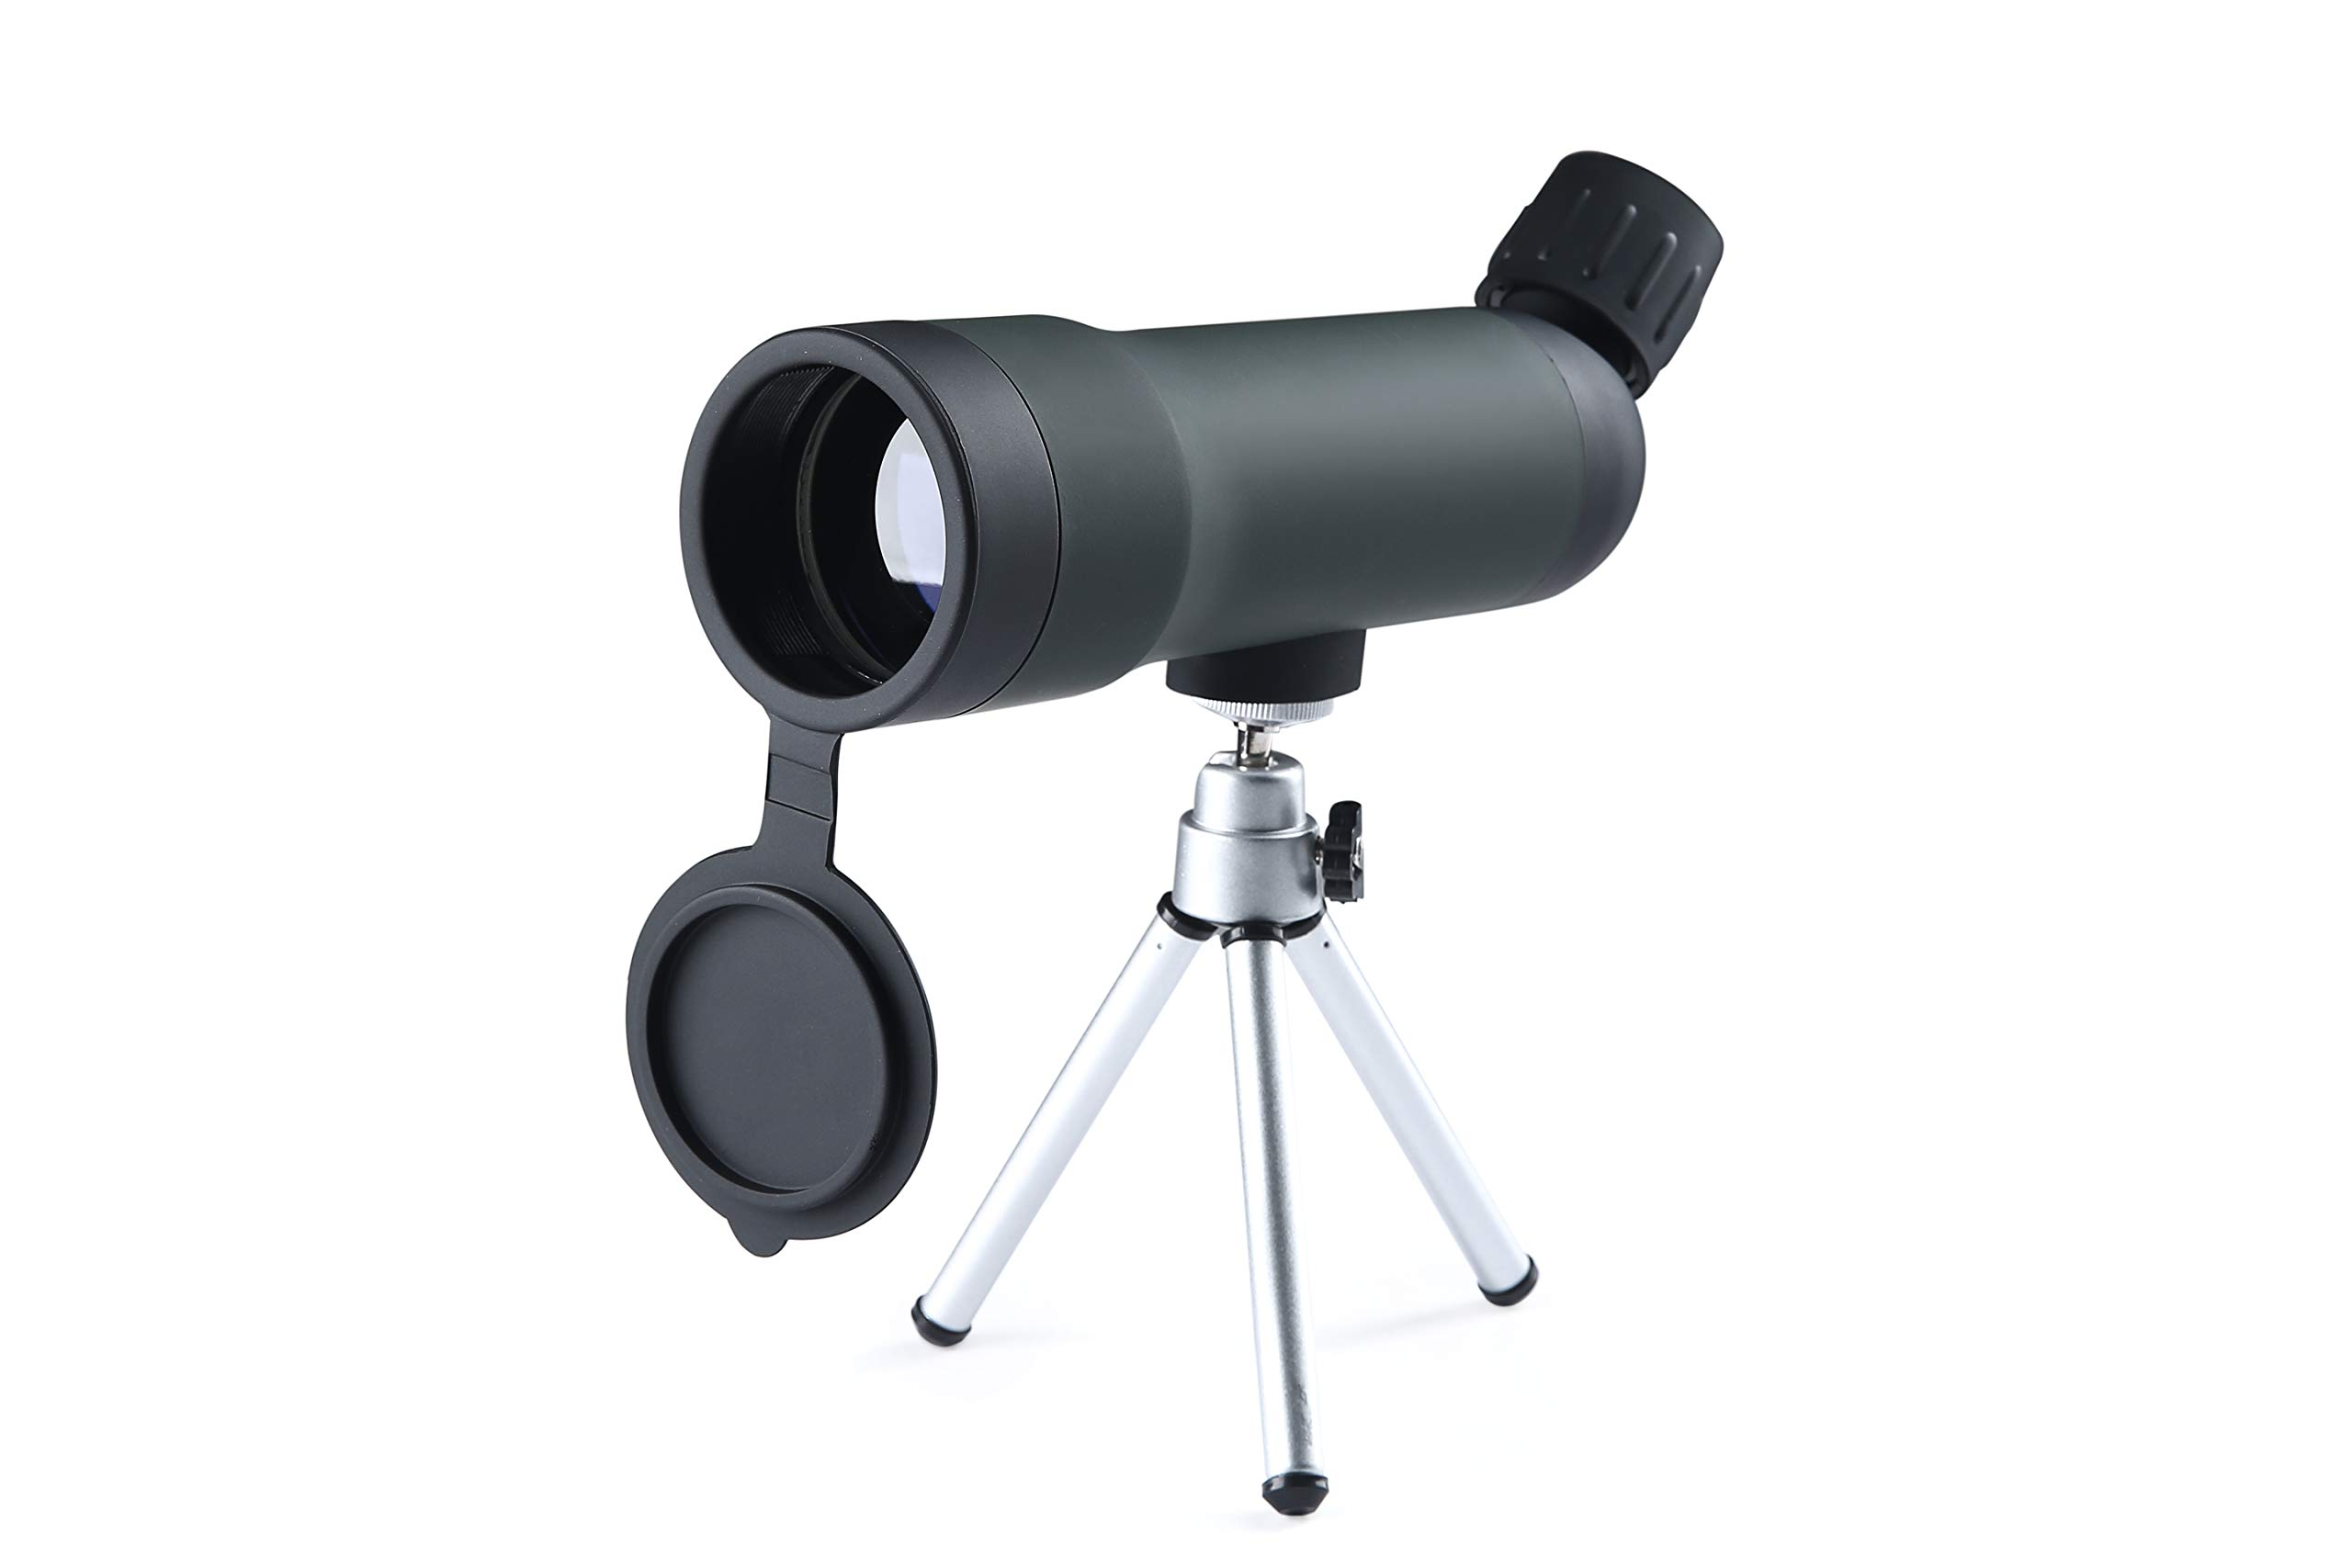 Bow 20x50 Waterproof Telescope Monocular Telescope,with Tripod Low Light Night Vision,Telescope for Taking Photos/Bird Watching/Hunting/ Camping/Concert by BOW